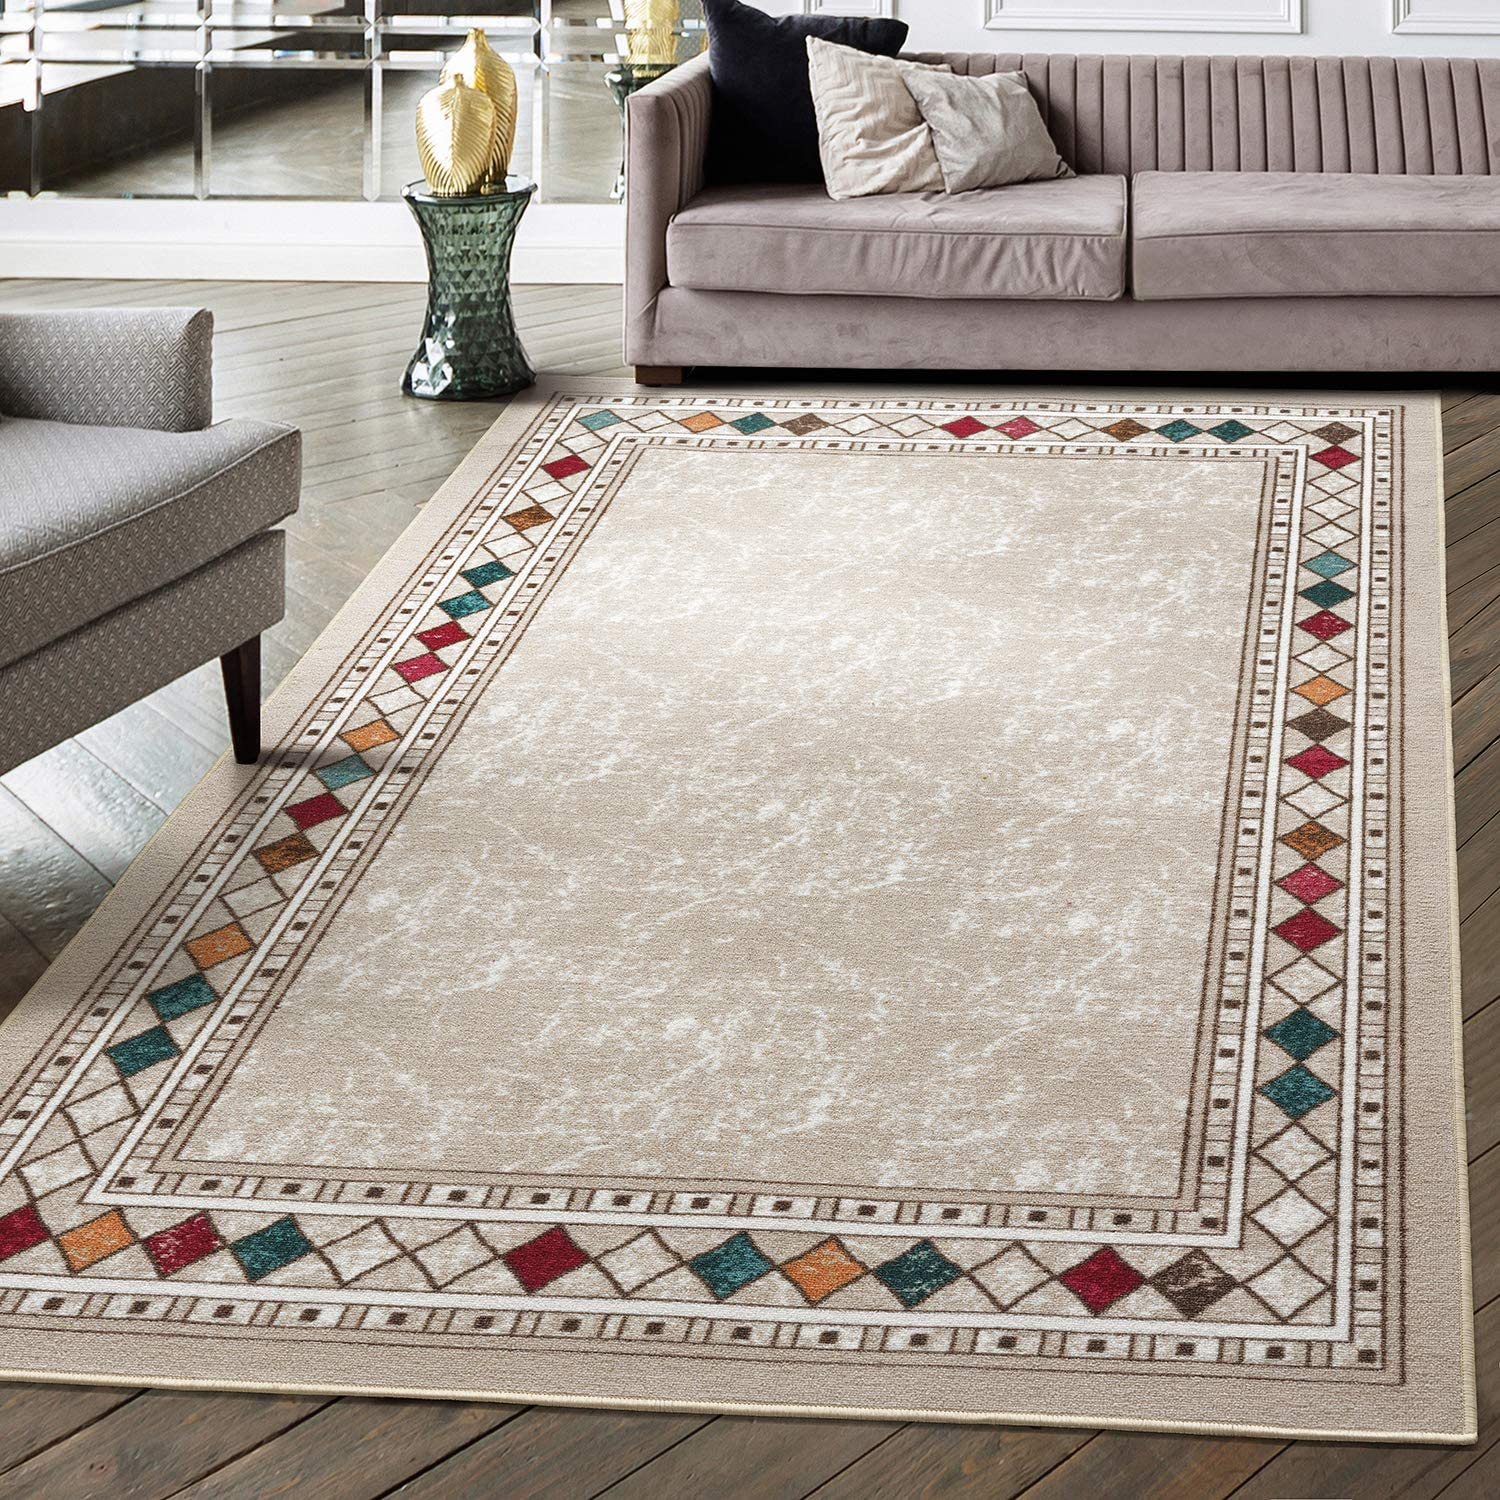 Antep Rugs Alfombras Modern Bordered 5x7 Non-Skid (Non-Slip) Low Profile Pile Rubber Backing Indoor Area Rugs (Beige, 5' x 7')